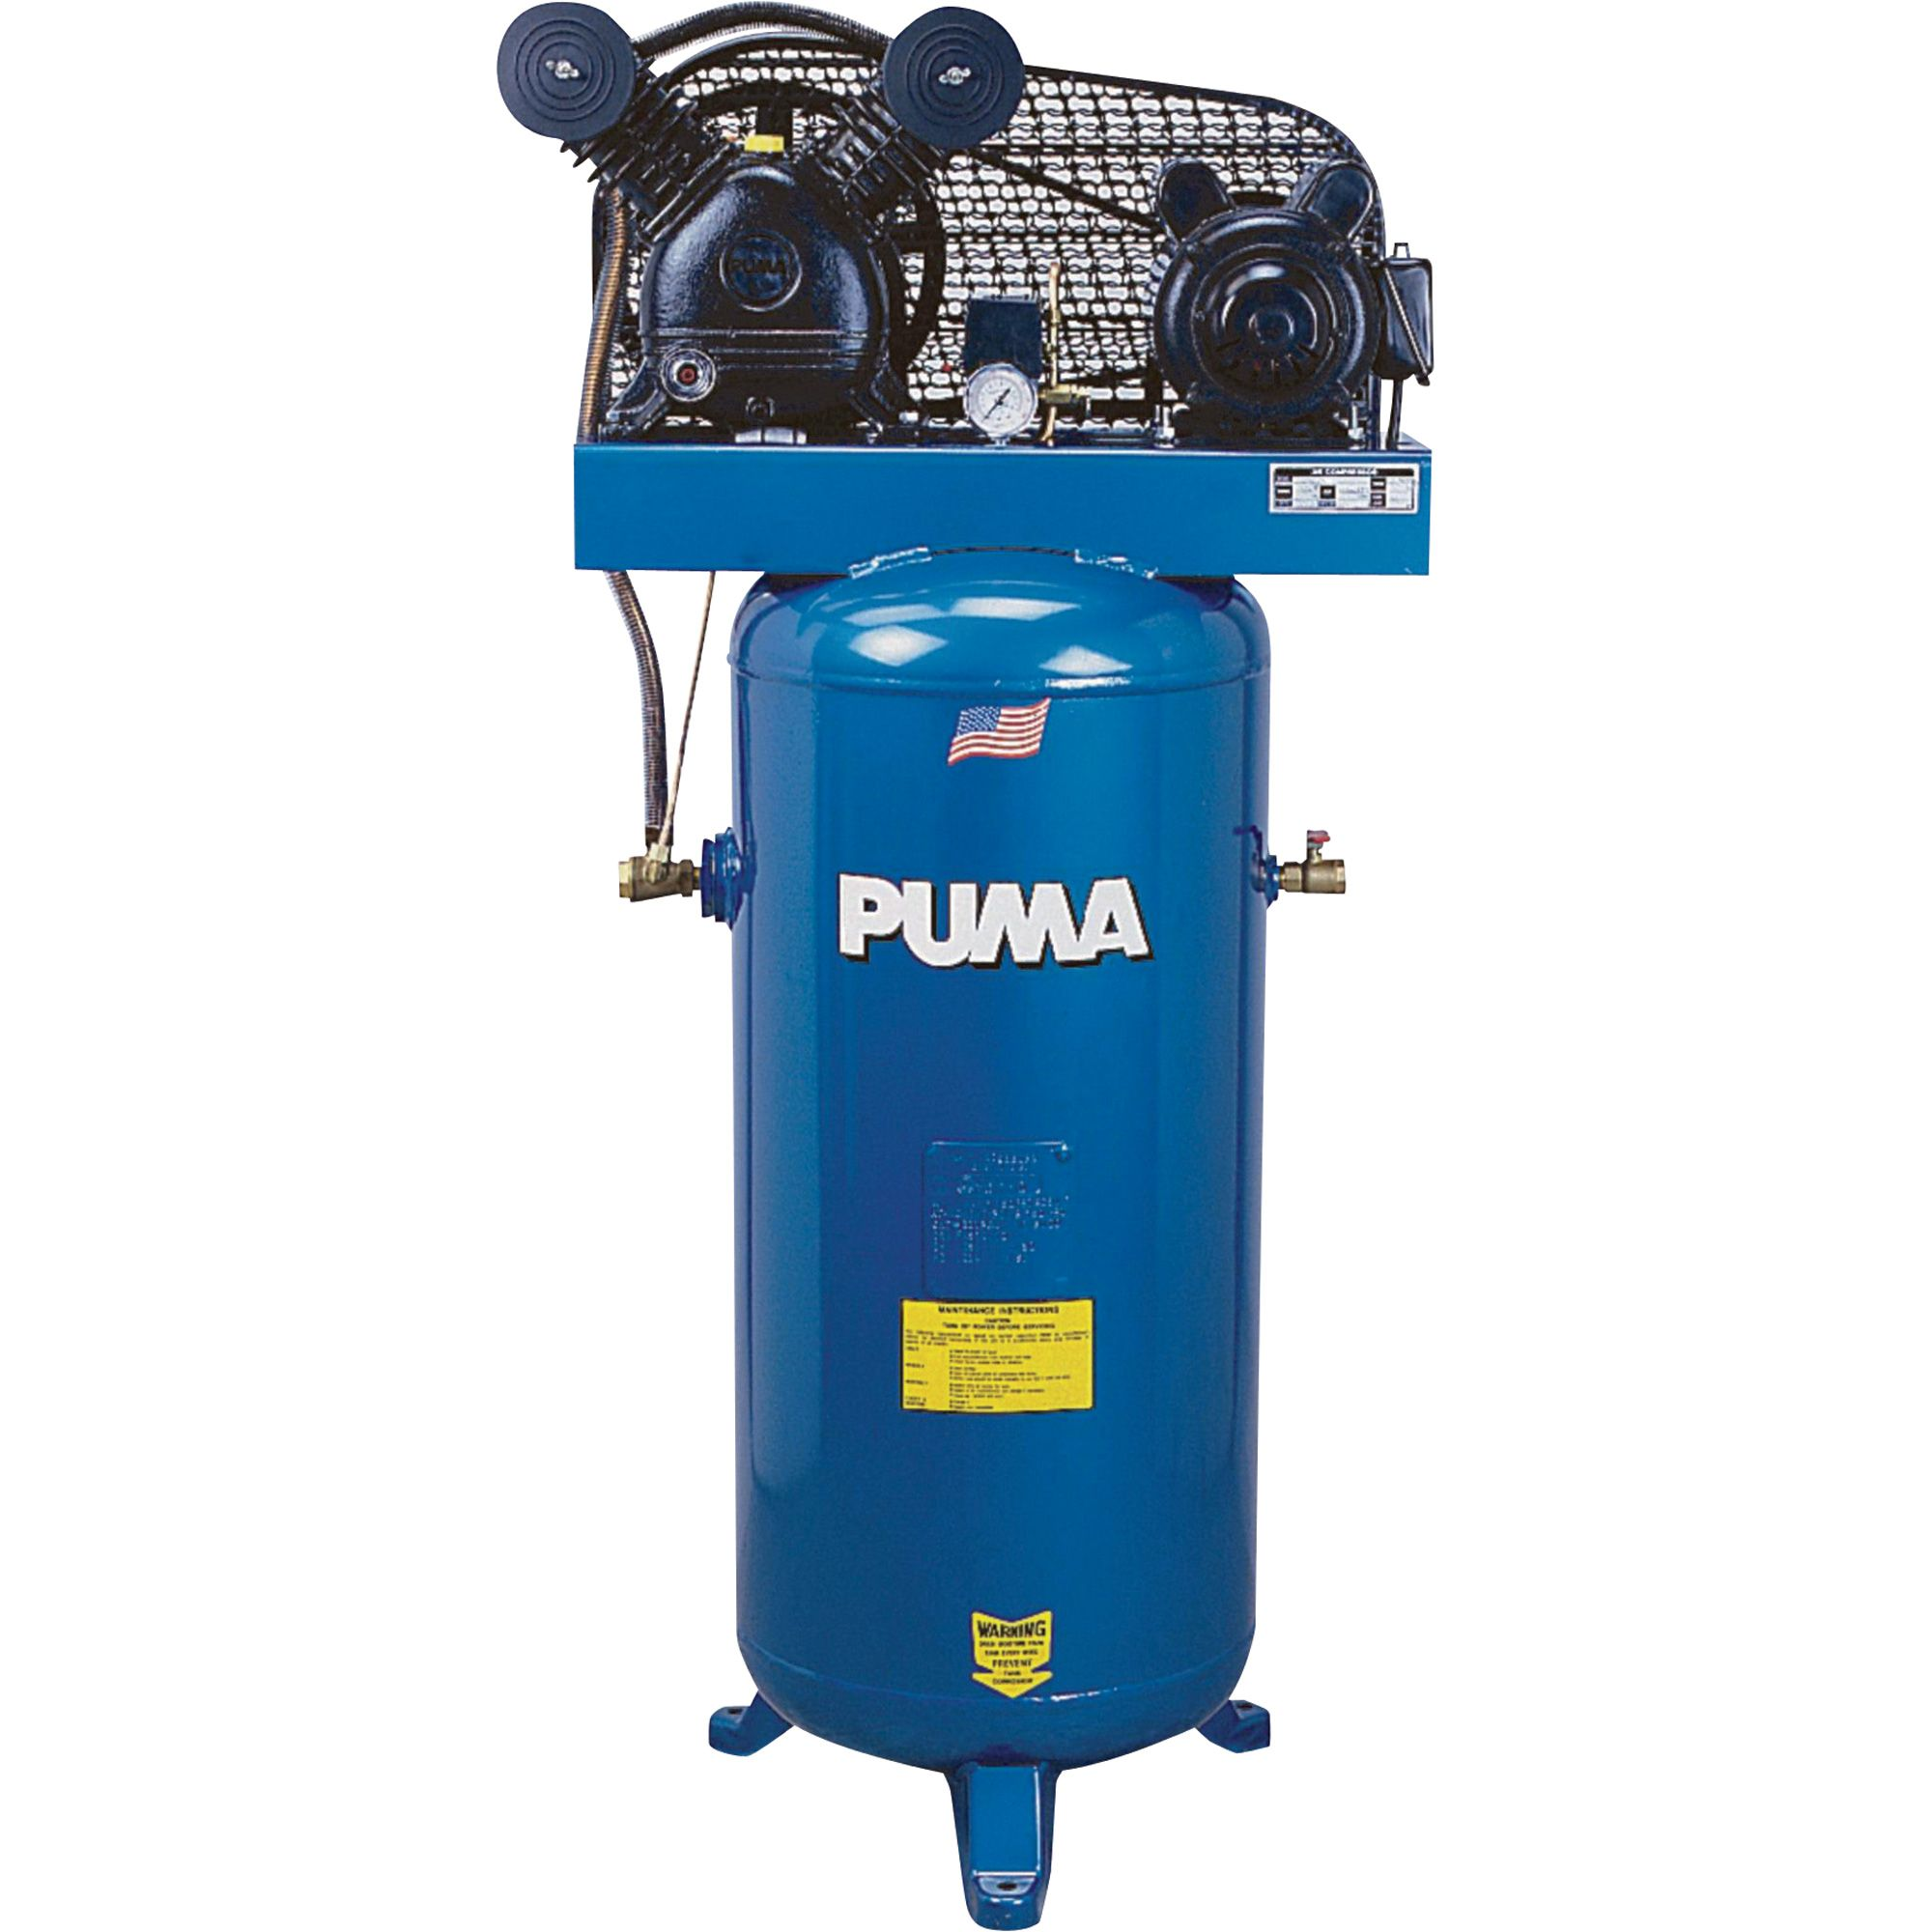 Setup Best Garage Air Compressor Damask Navy Wiring Diagram Makita Mac2400 Hitachi Ec12 Right Boing S You Re Tires Learned Automotive I To Wrong And It Inflating